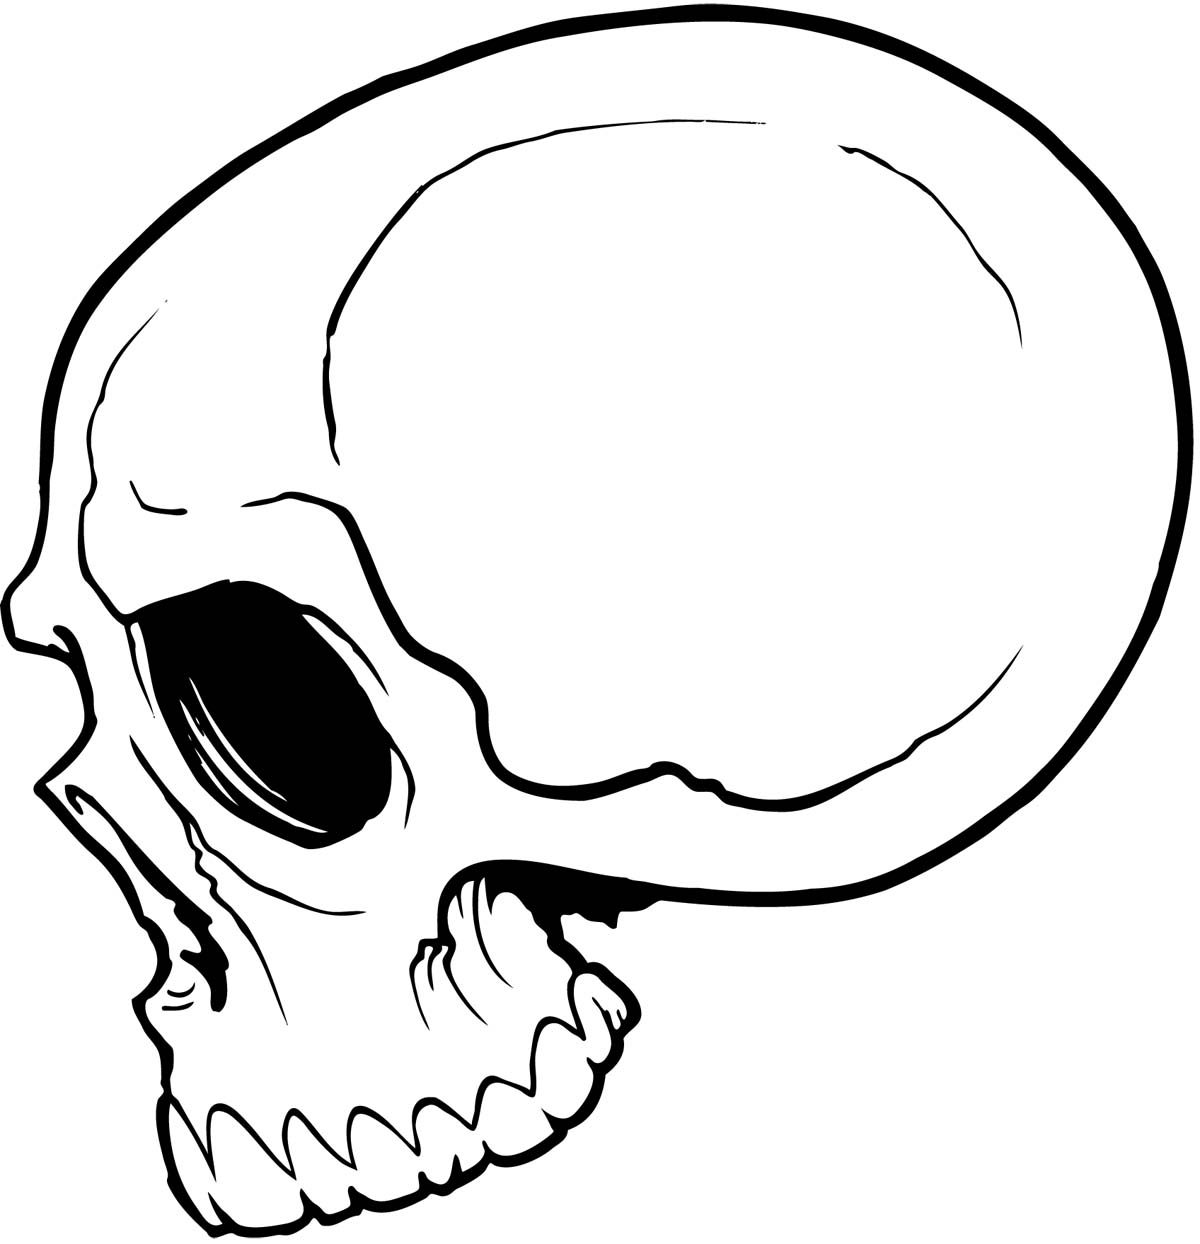 skull drawing easy how to draw a traditional skull tattoo step by step skull easy drawing